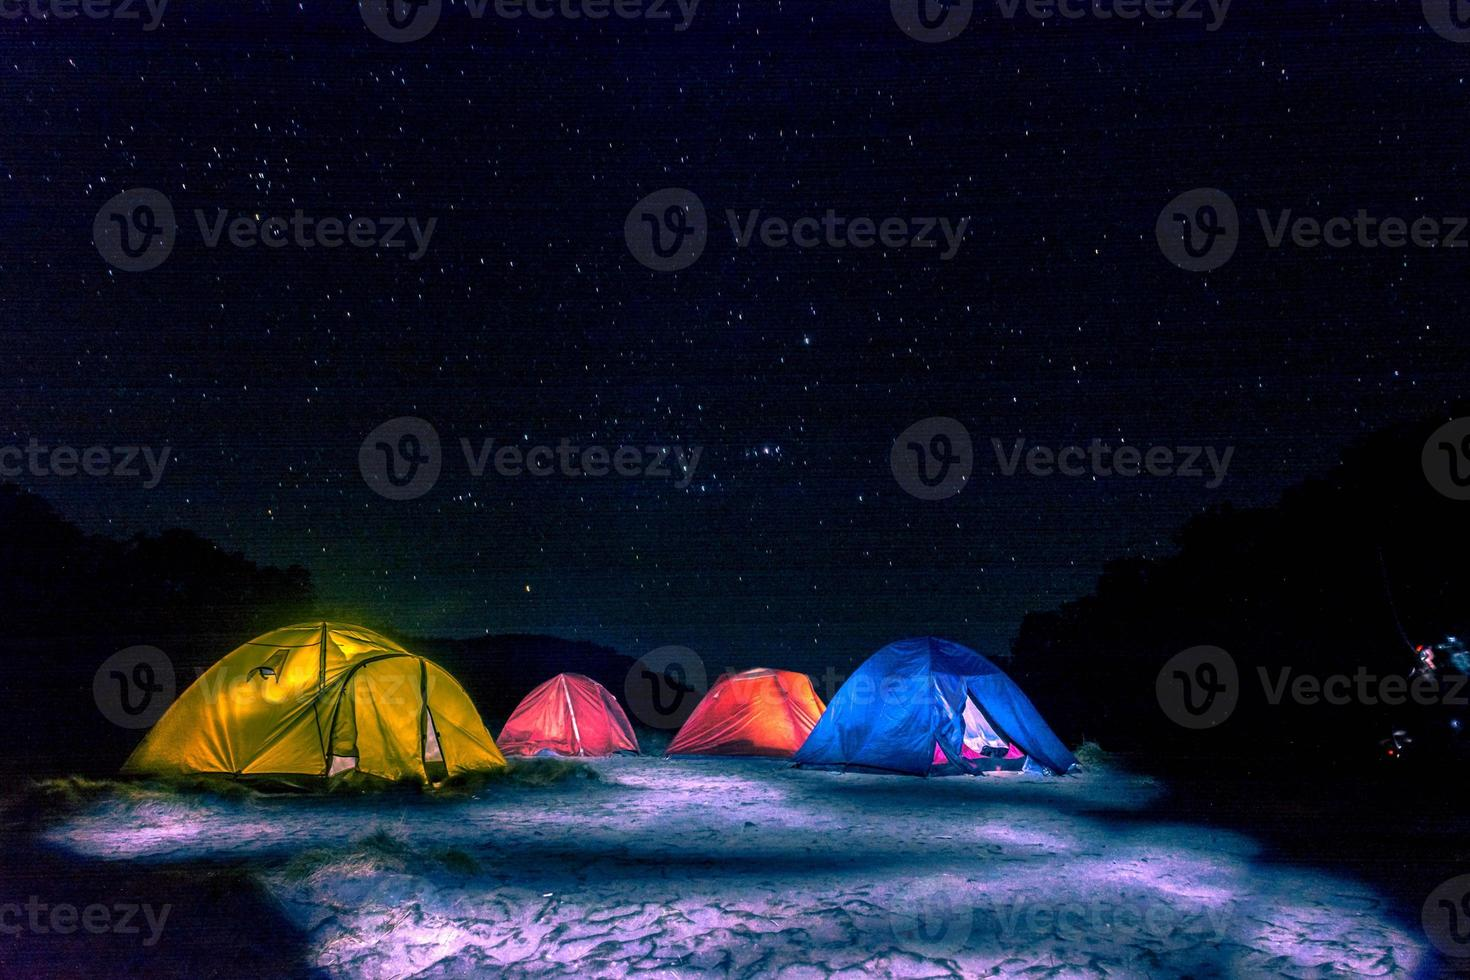 Astro Camps, right under the stars. photo